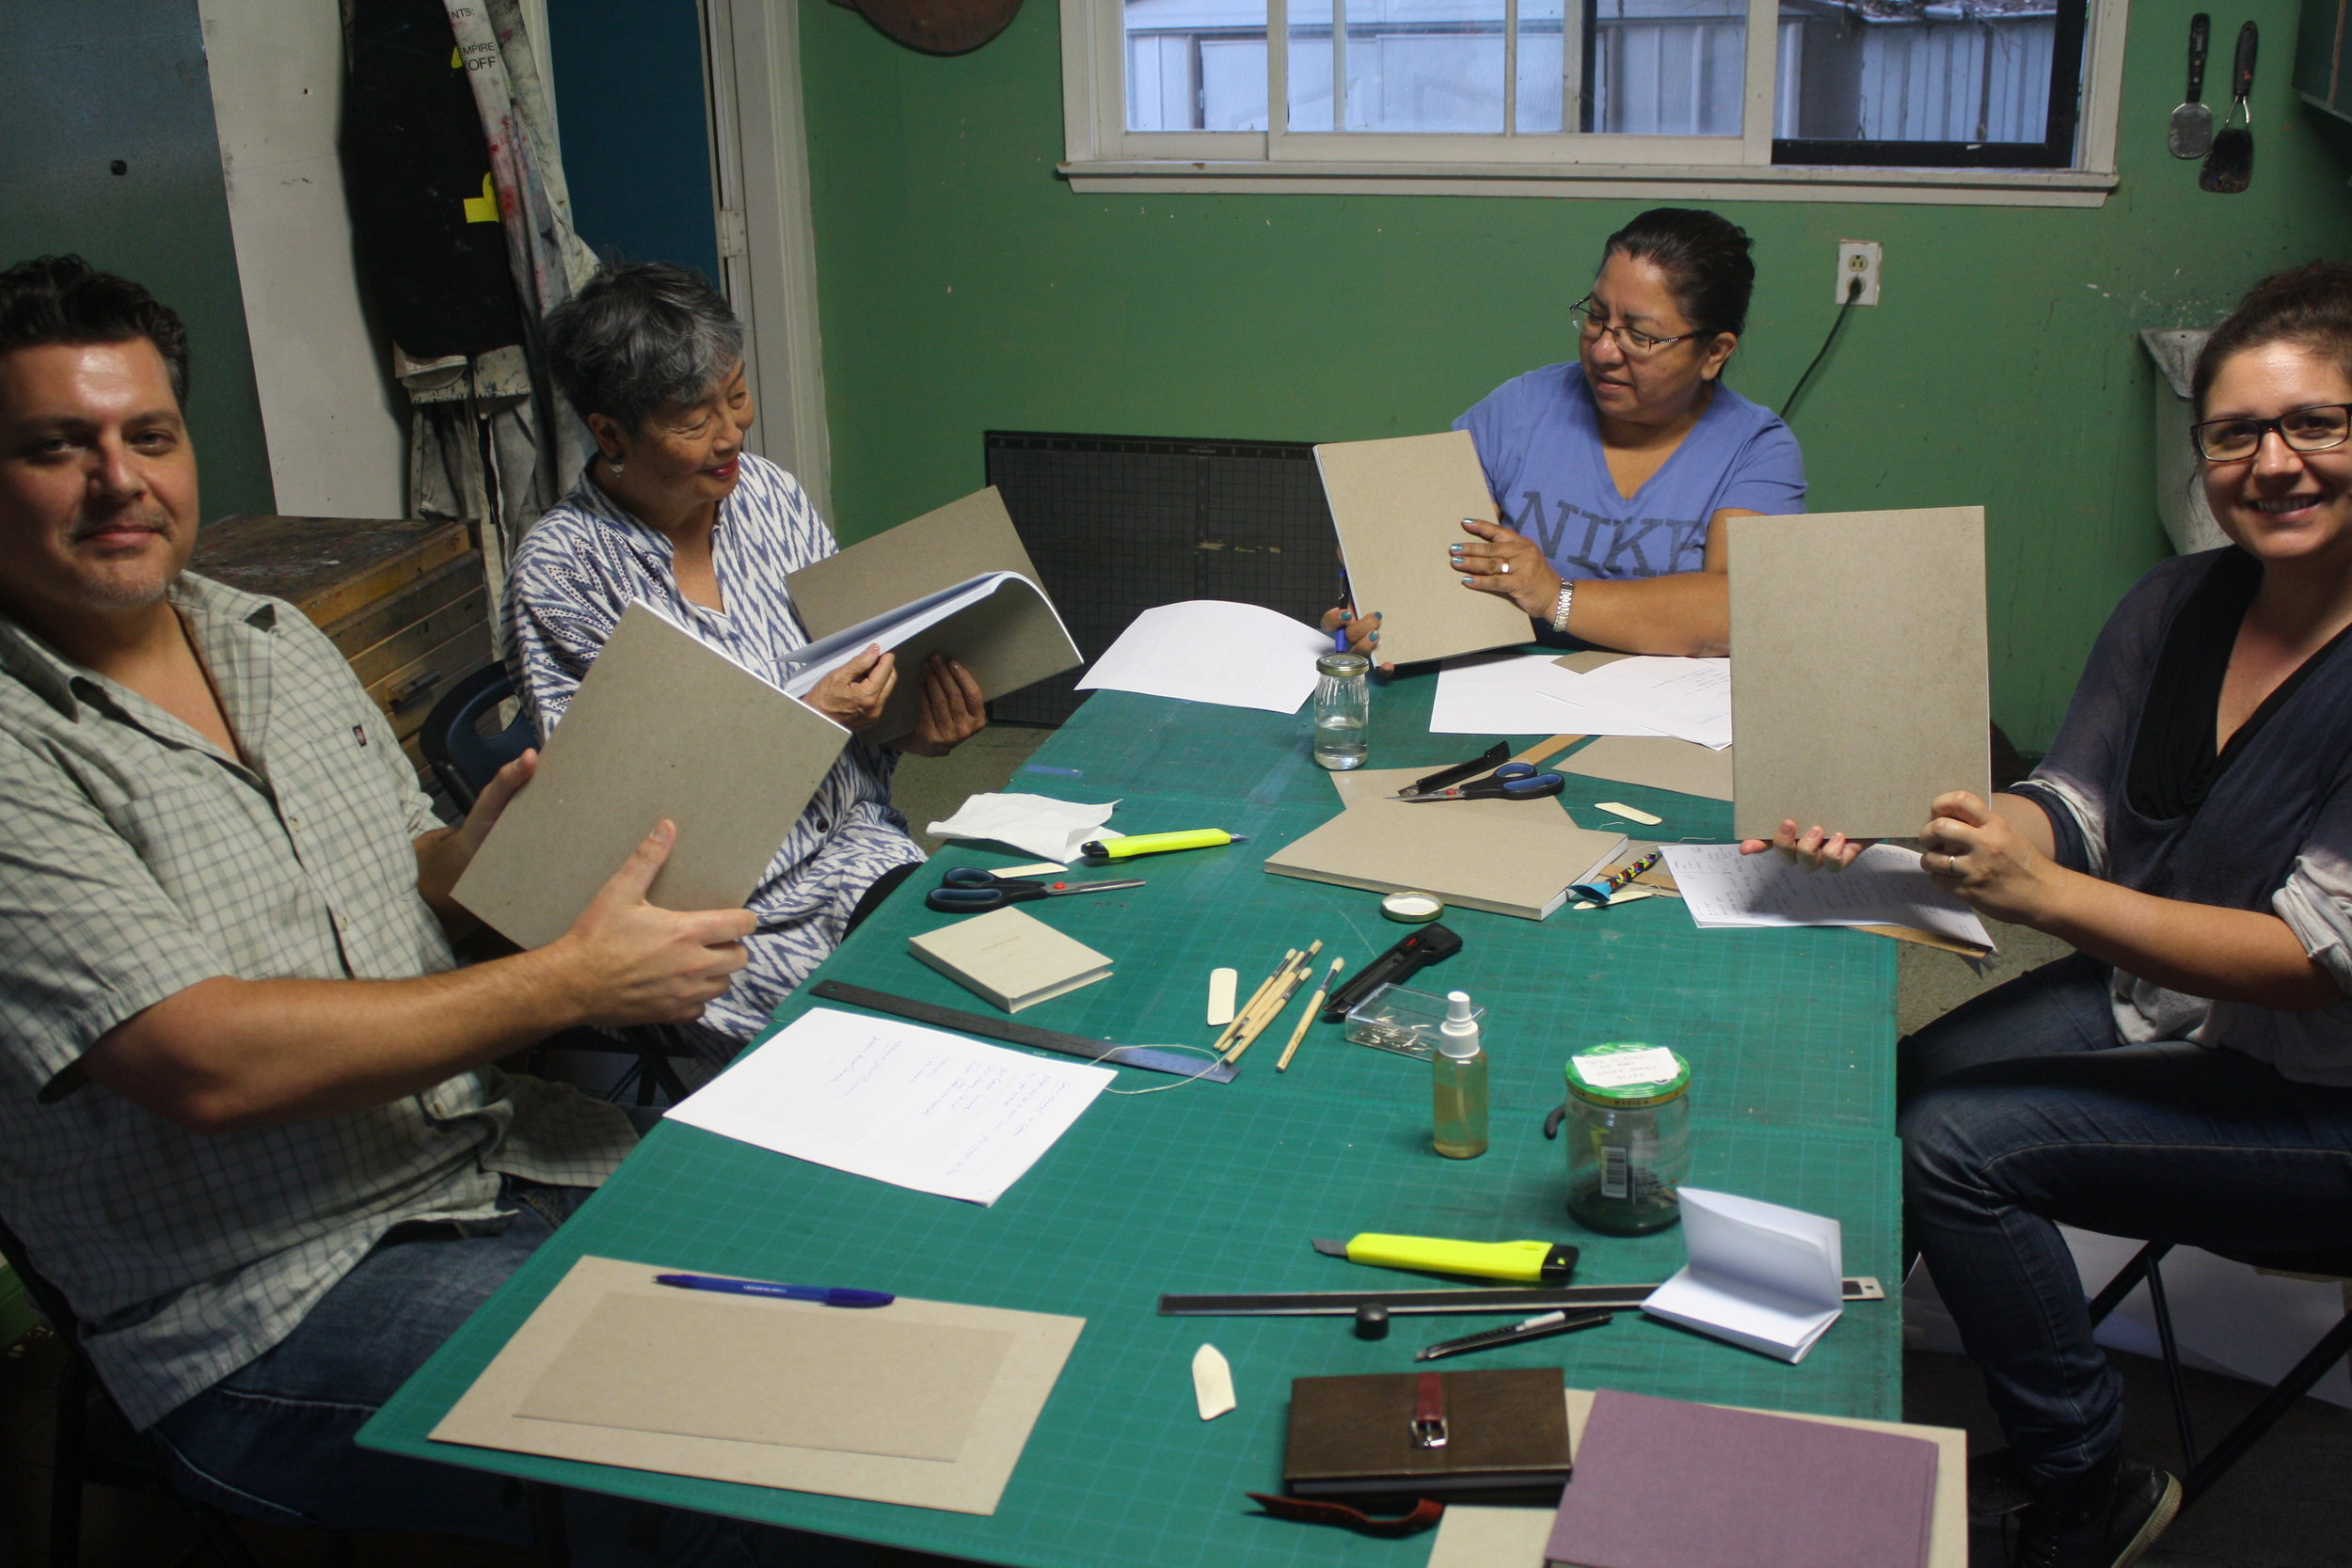 Jennifer Phiffer's Soft-Bound Bookmaking Workshop - Fall 2014